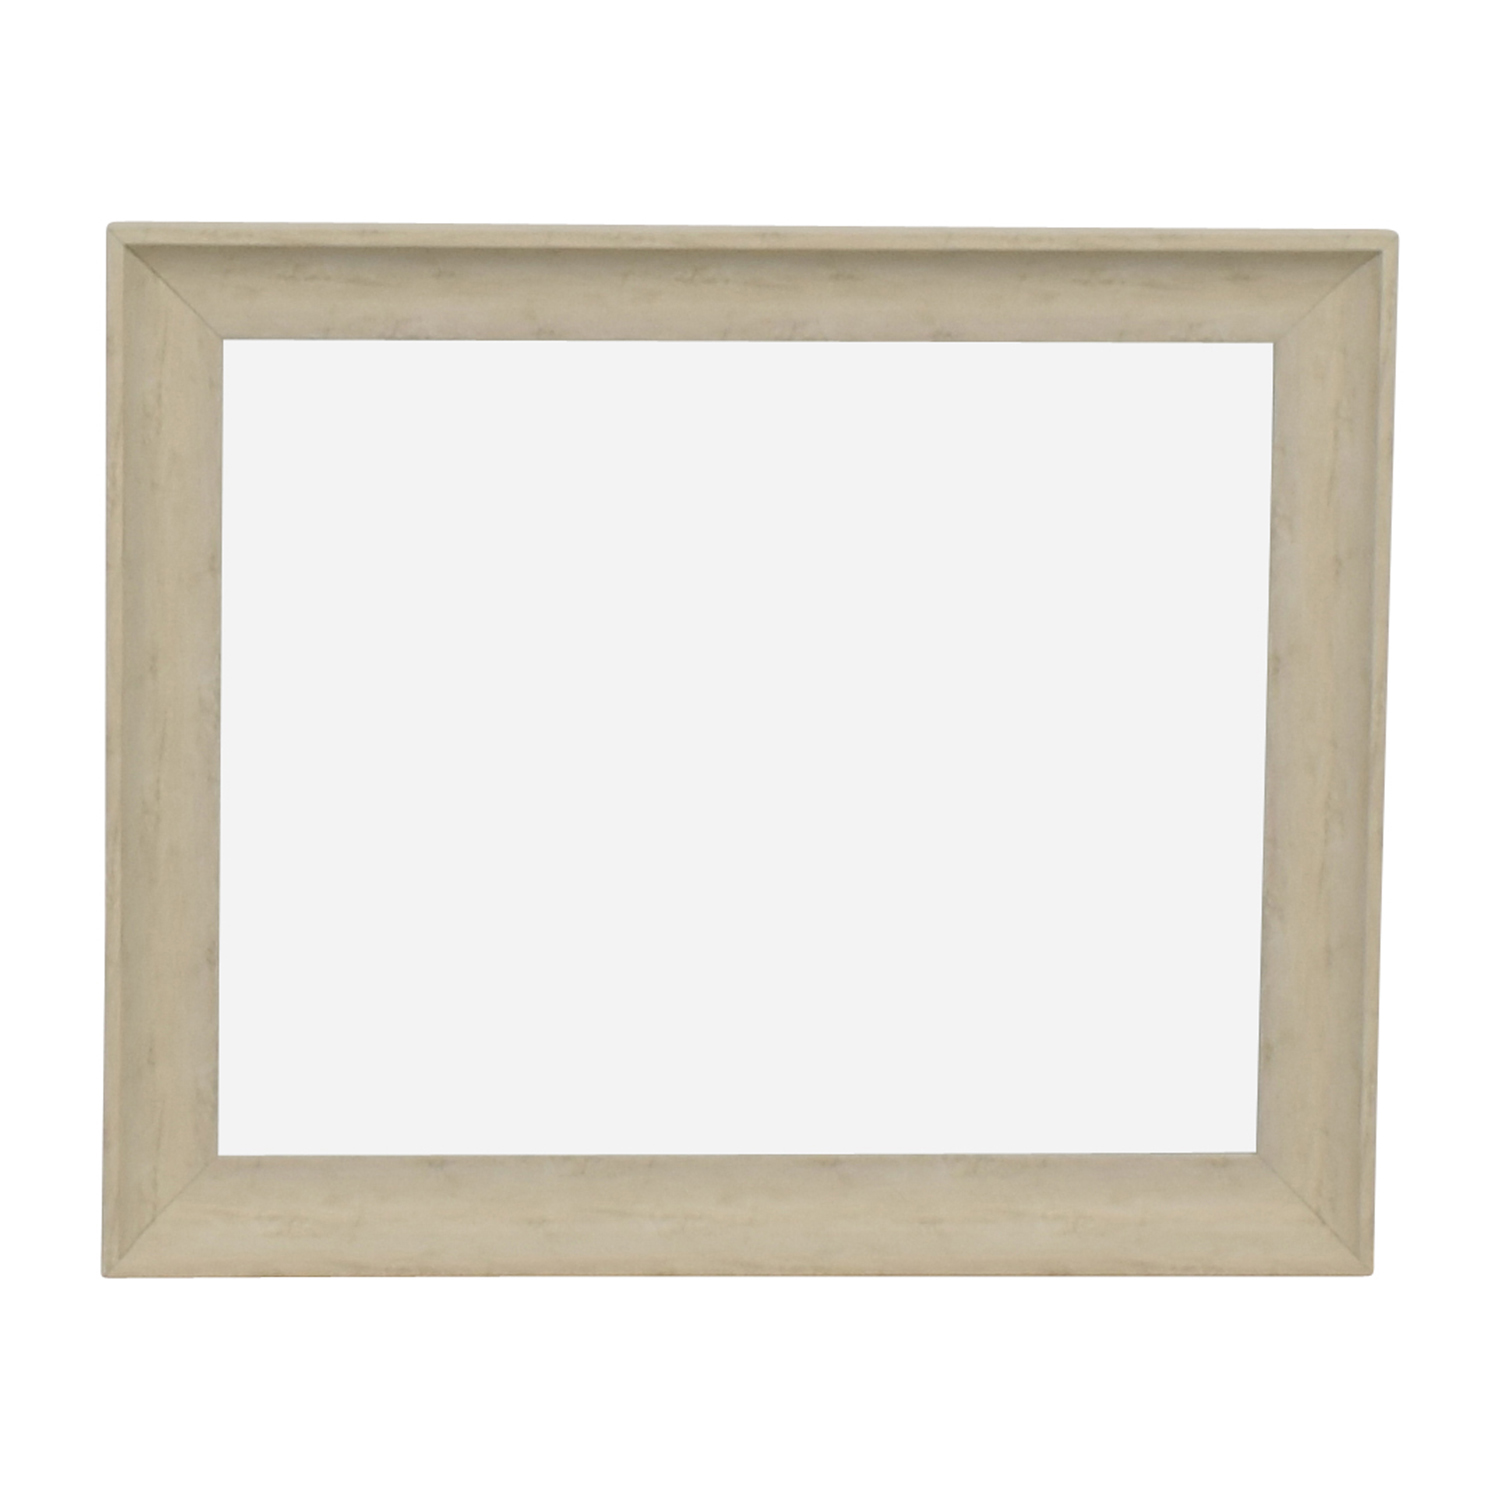 BP Industries BP Industries Decorative Wooden Mirror